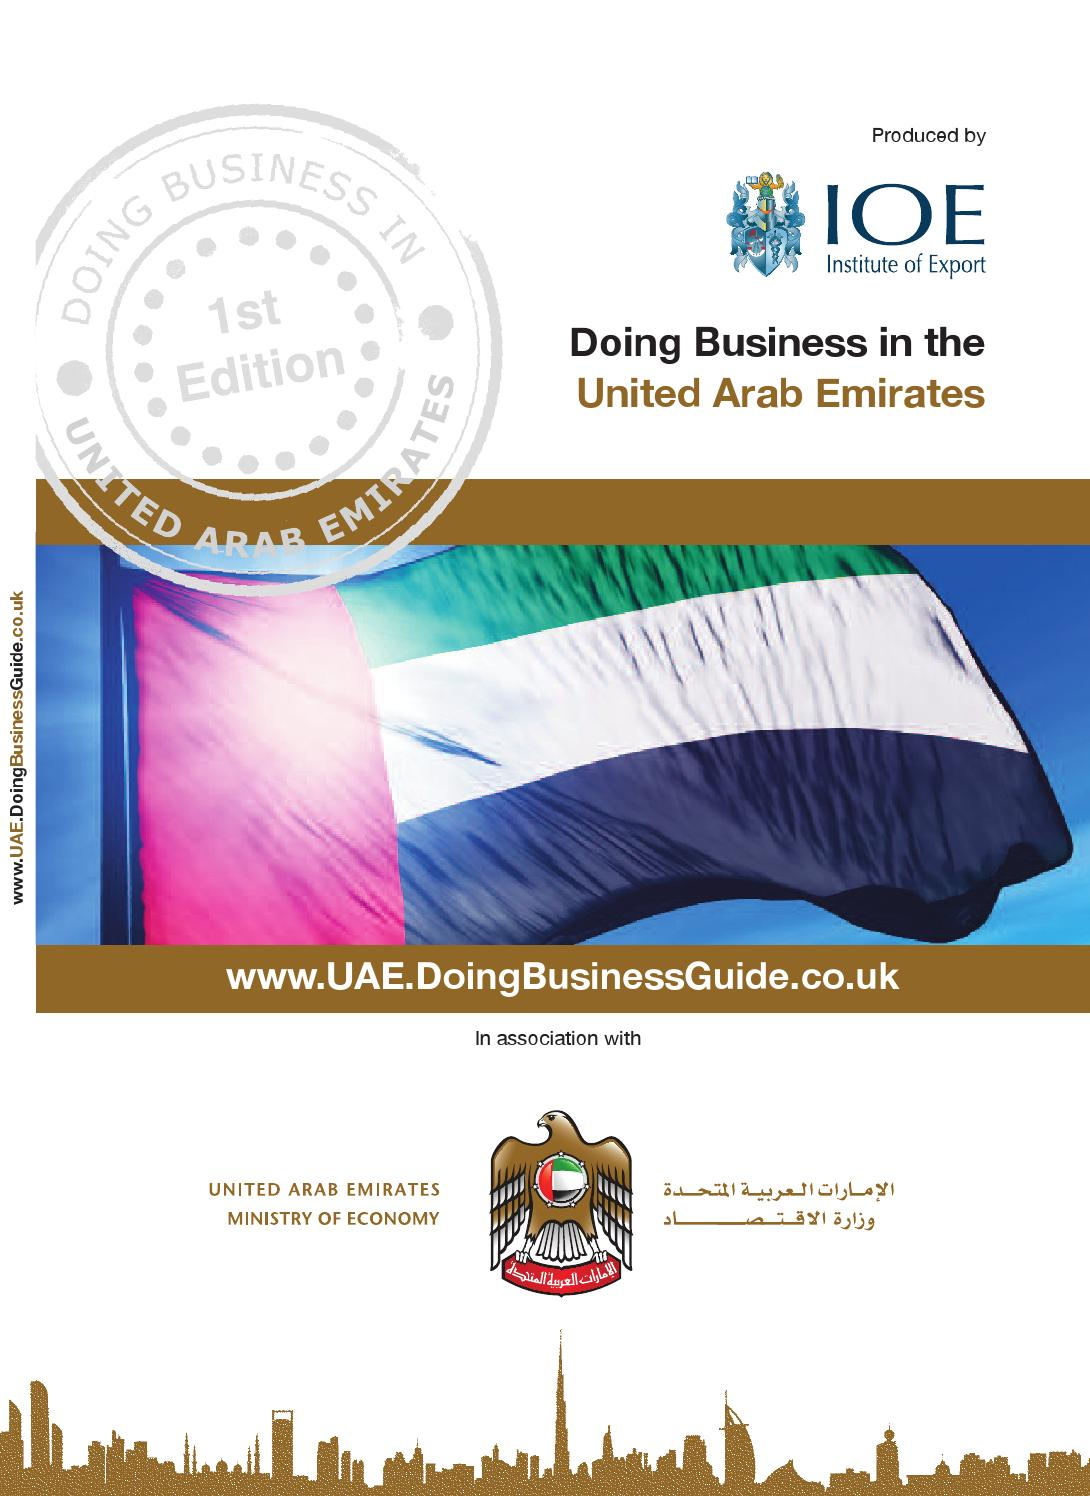 Doing Business in the UAE Guide by Doing Business Guides - issuu